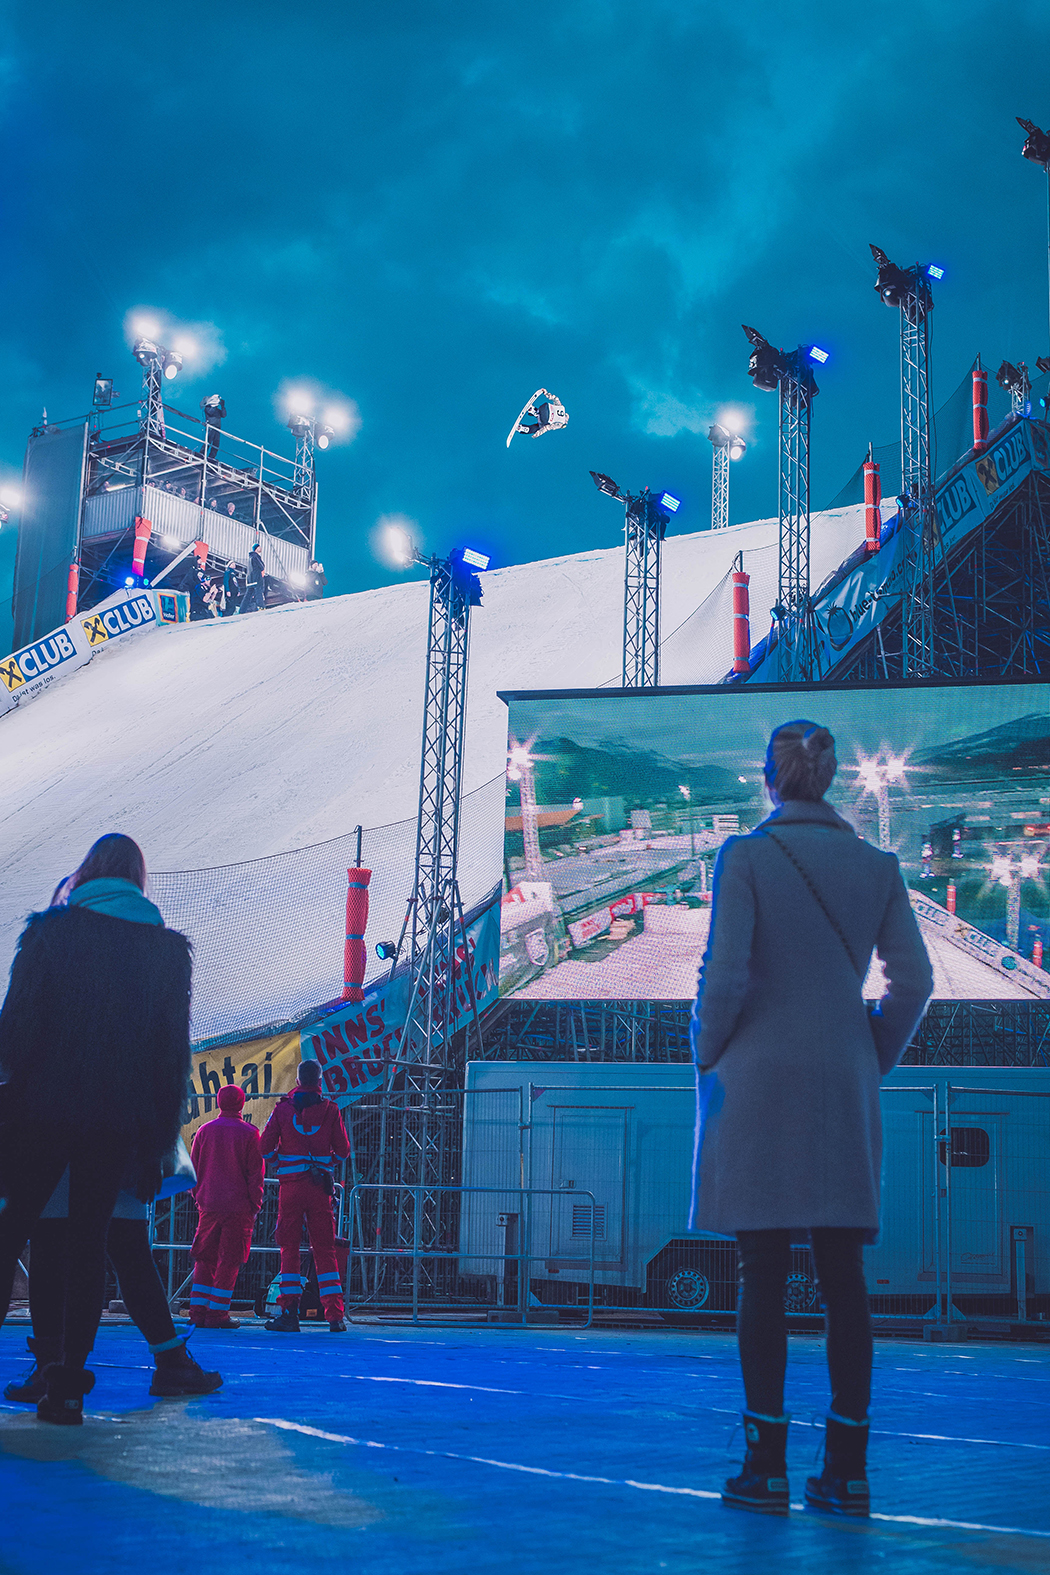 Lifestyleblog-Lifestyleblogger-Lifestyle-Blog-Blogger-AirandStyle-Air-and-Style-Innsbruck-2017-Lindarella-9